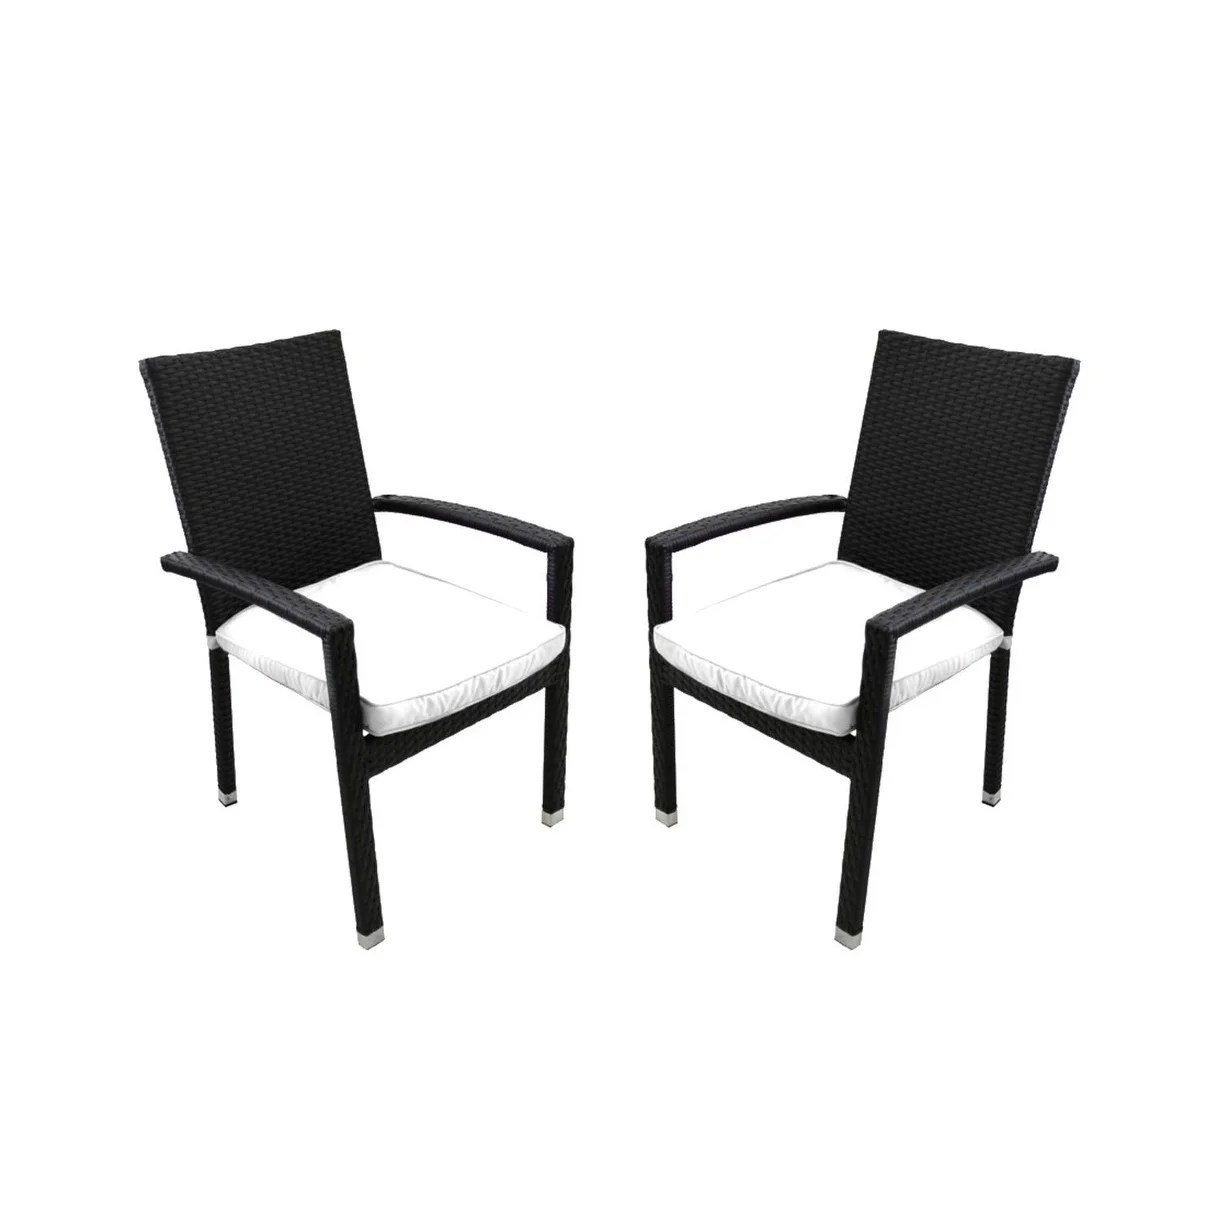 Resin Chairs Set Of 2 Black Resin Wicker Outdoor Patio Furniture Dining Chairs White Cushions